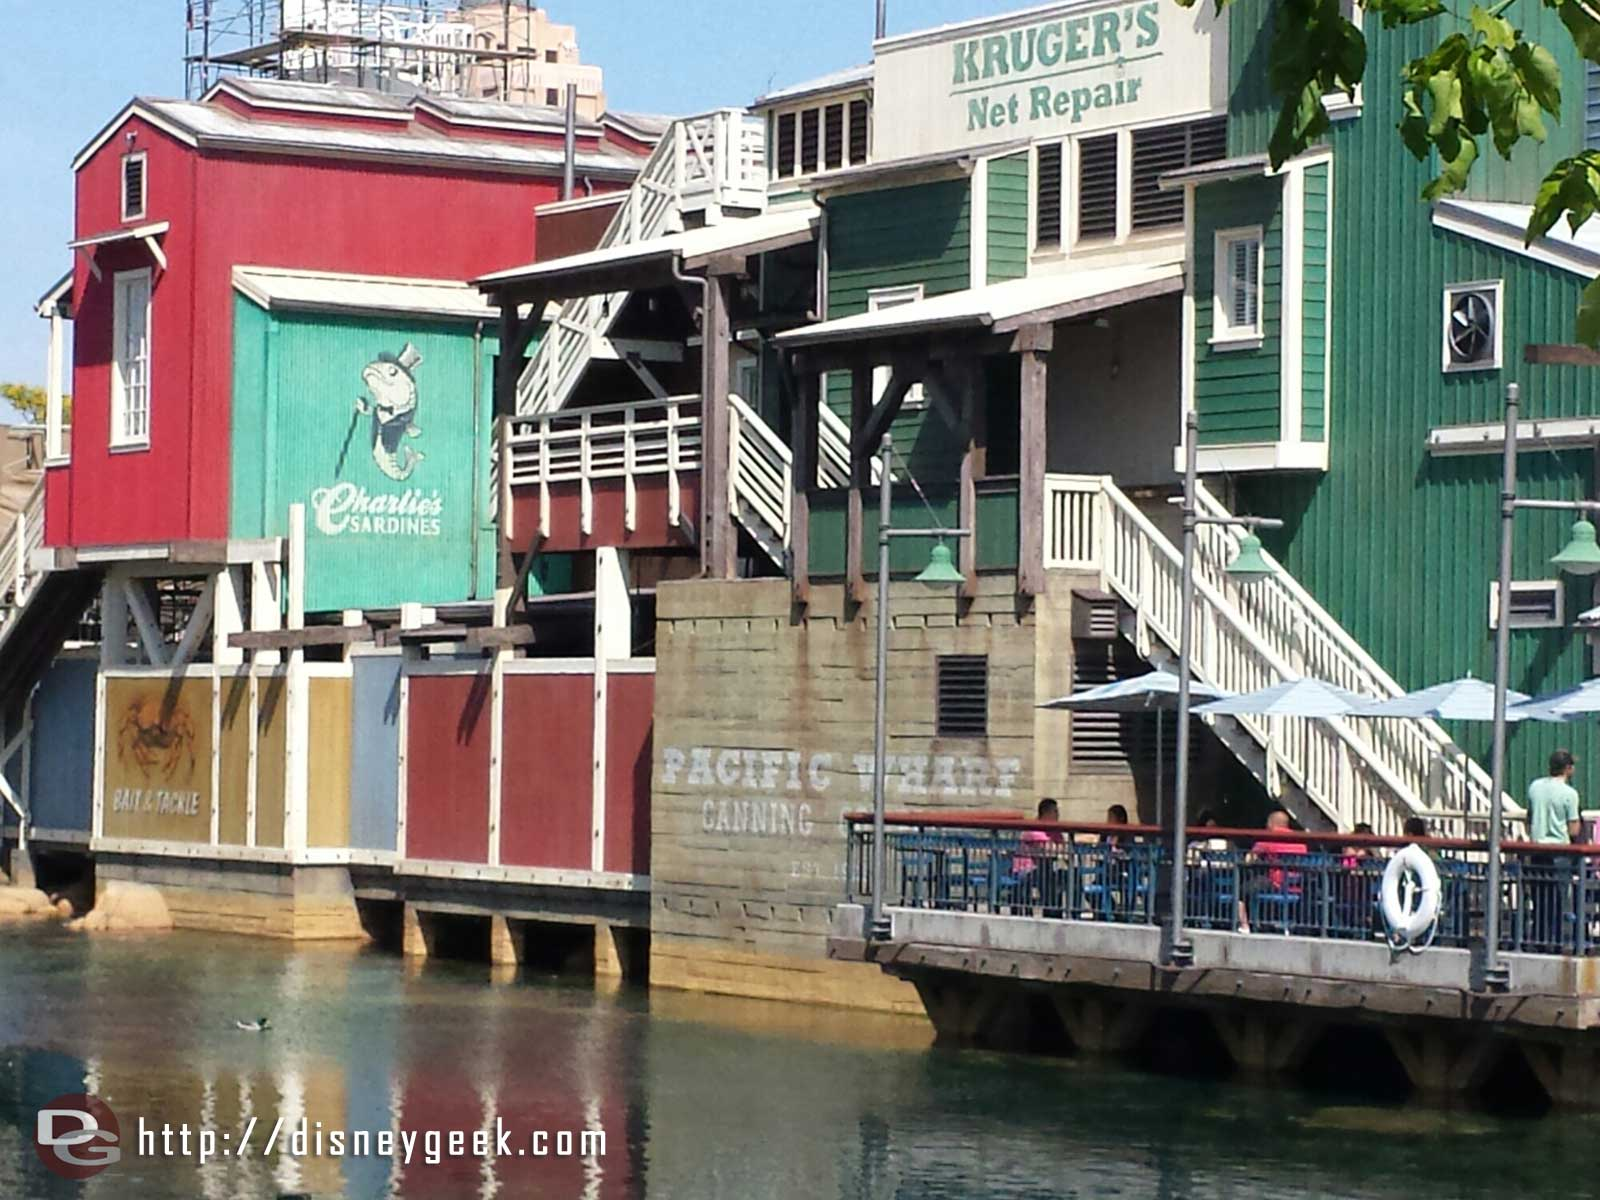 A better picture of the recently repainted Wharf area